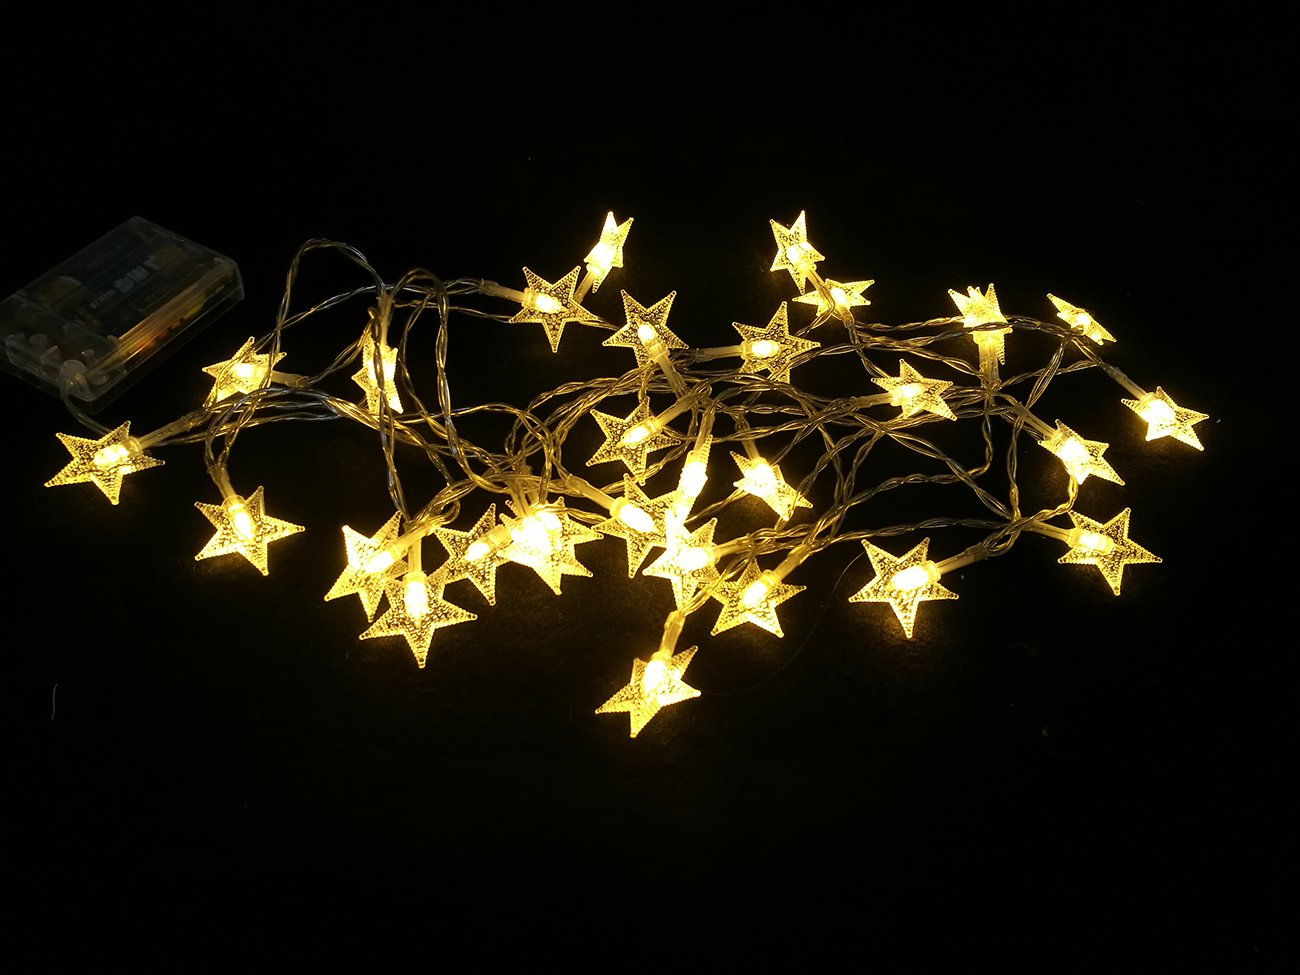 Stars Fairy Lights Battery Operated String Lights 4.5M 30 LED Warm White Mood Light for Home Wedding Party Holiday Winterworm